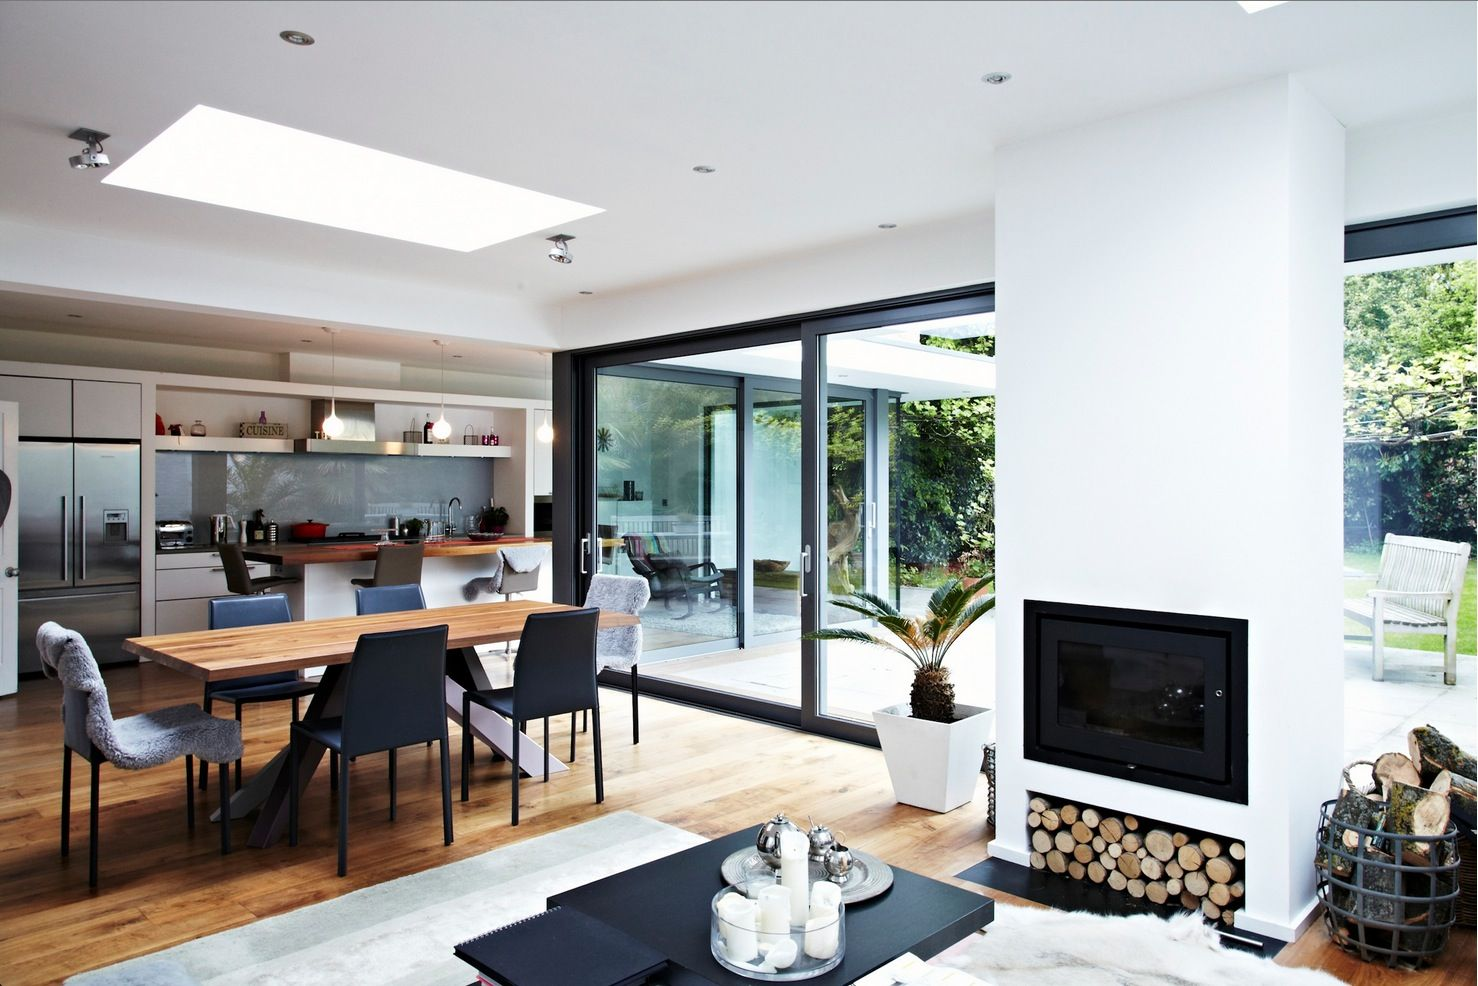 Living Room Extensions Interior Alluring This Home Located In The Kingston Region Of London Is The Perfect . Design Ideas